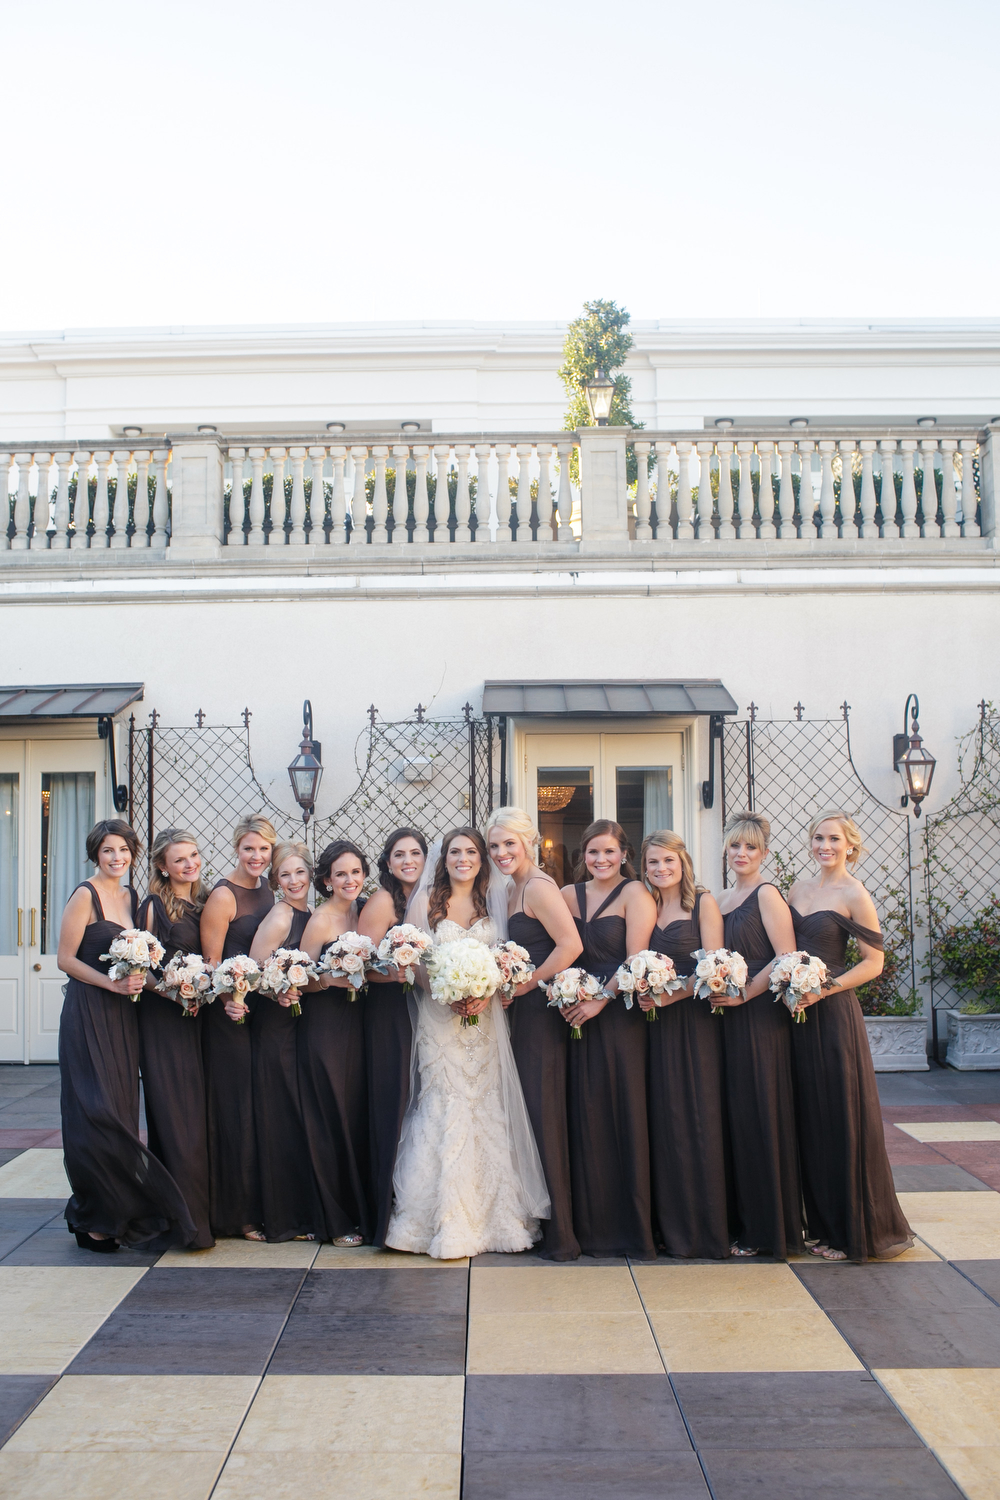 Grey bridesmaids dresses | Mercier Terrace Ritz-Carlton | How to transform an open ballroom with stunning decor | Sapphire Events | Greer G Photography | Board of Trade | White and Gold Wedding | Winter Wedding Inspiration | White and Green Wedding | Ballroom wedding